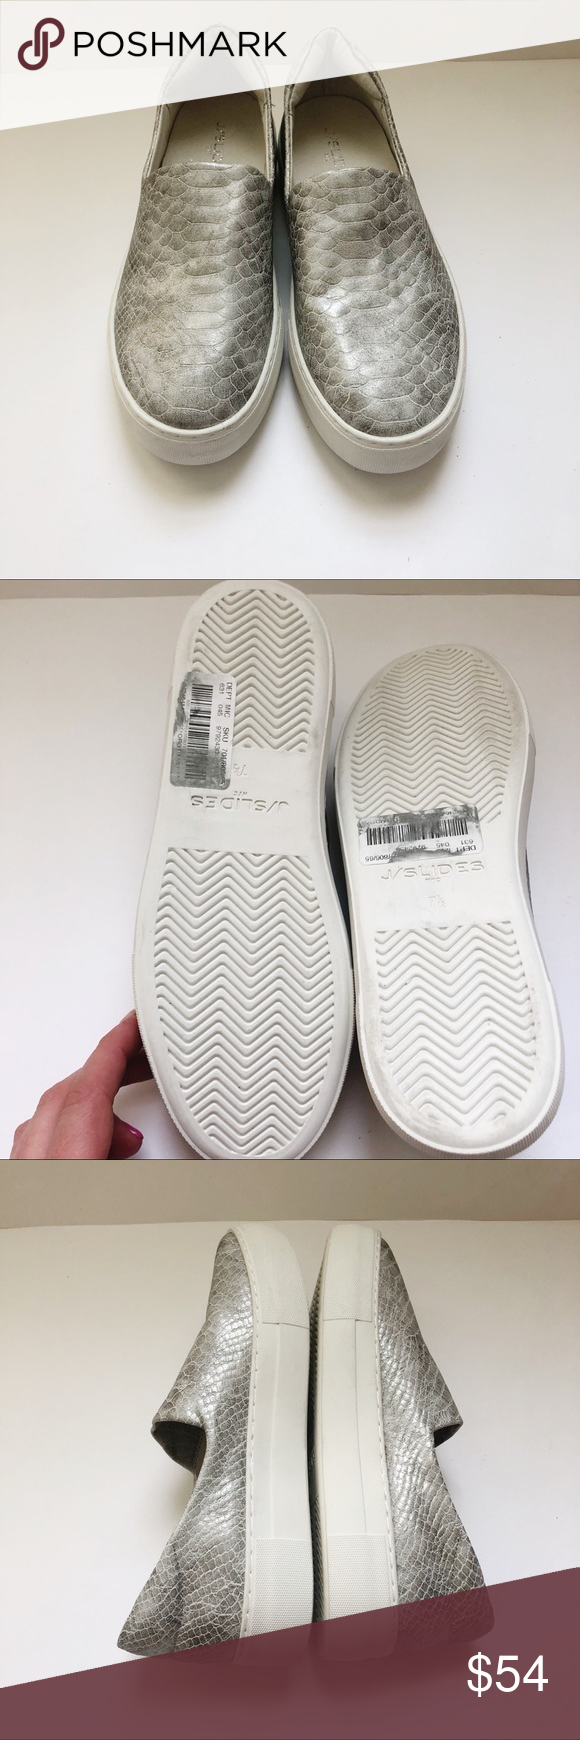 J Slides Arianna For Anthropologie Slip On Sz 7 5 Stylish Sneakers Slip On J Slides